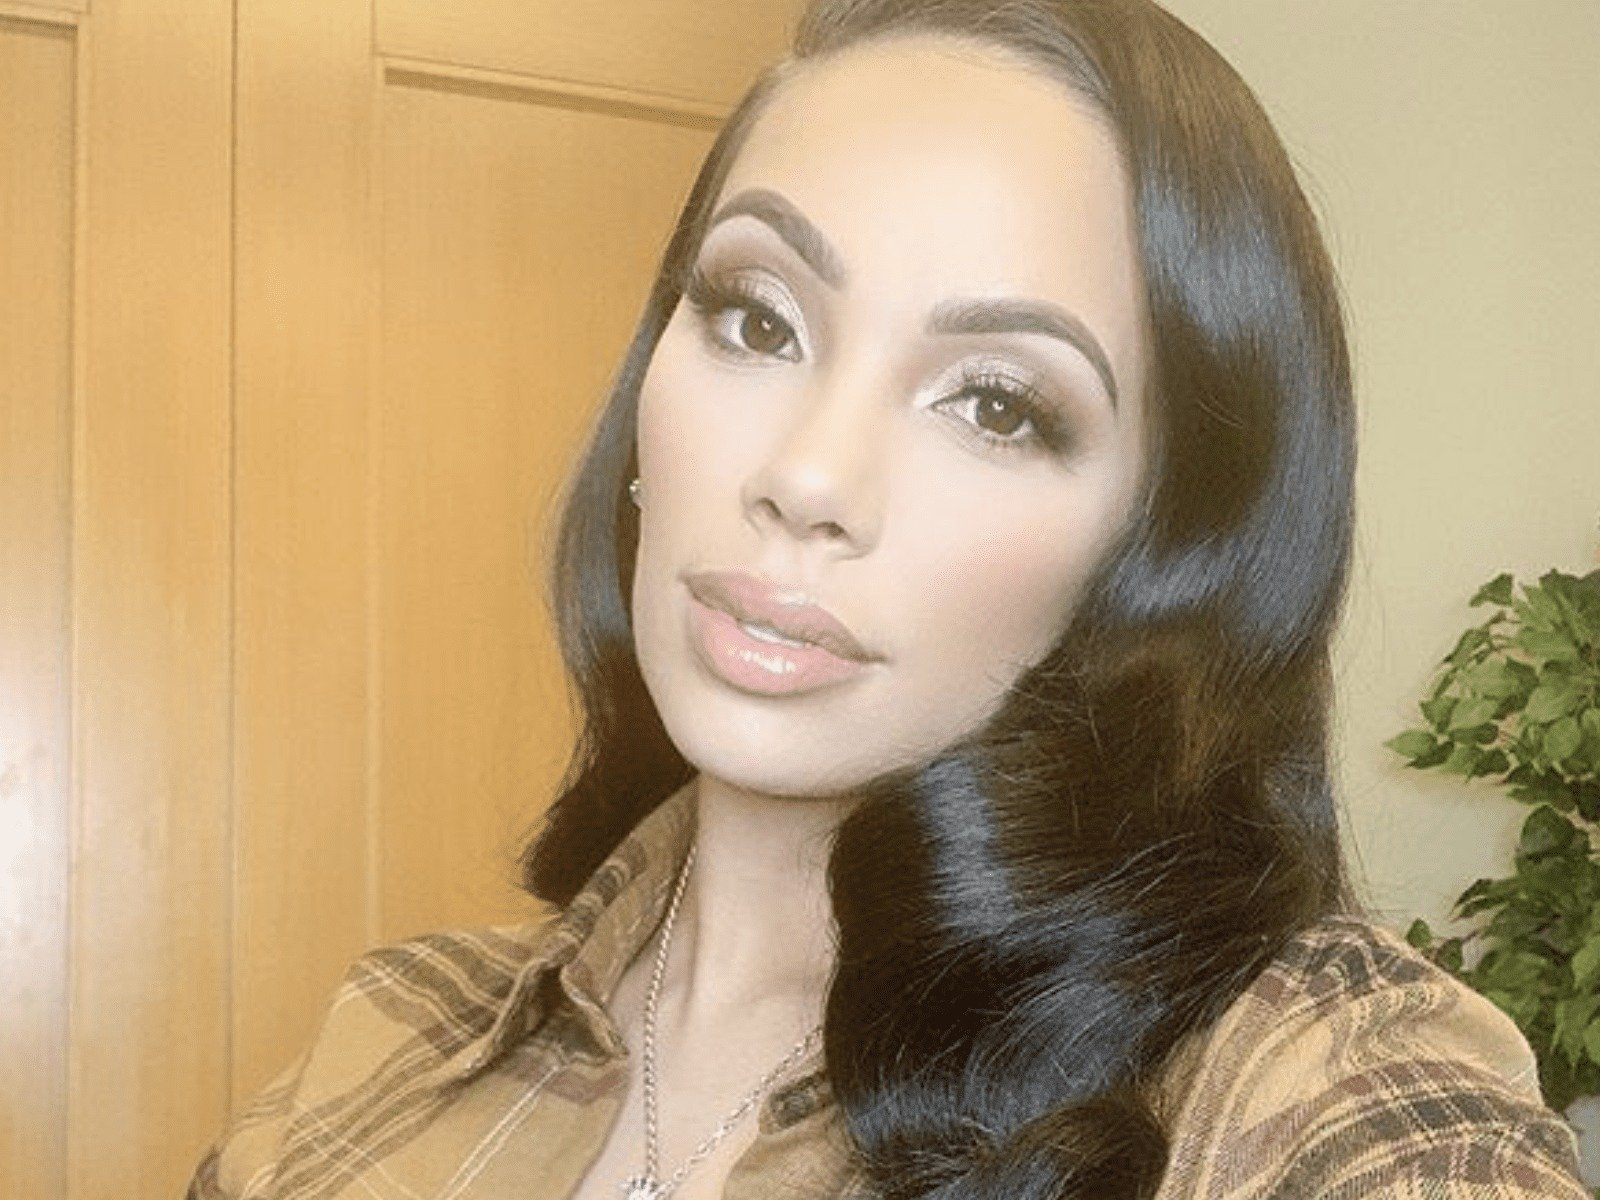 Erica Mena Drops Her Clothes And Breaks The Internet For Her 33rd Birthday – See Her Pics Here